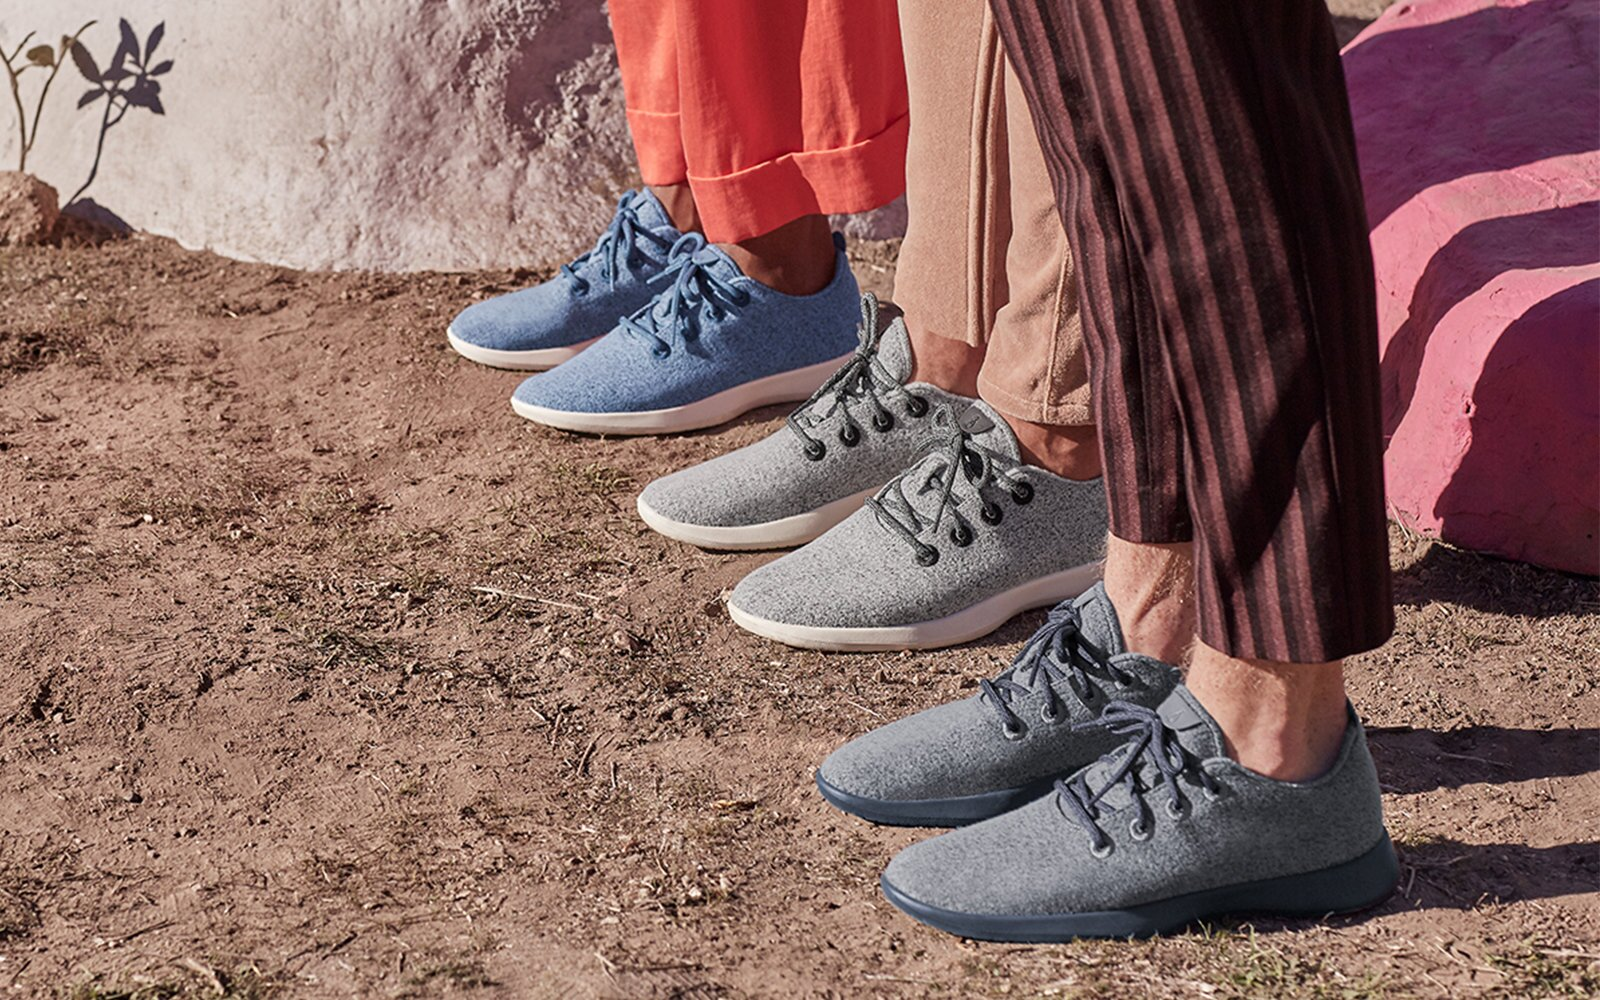 d00e7feea Allbirds  Cult-favorite Comfy Sneakers Now Come in 8 New Colors for ...